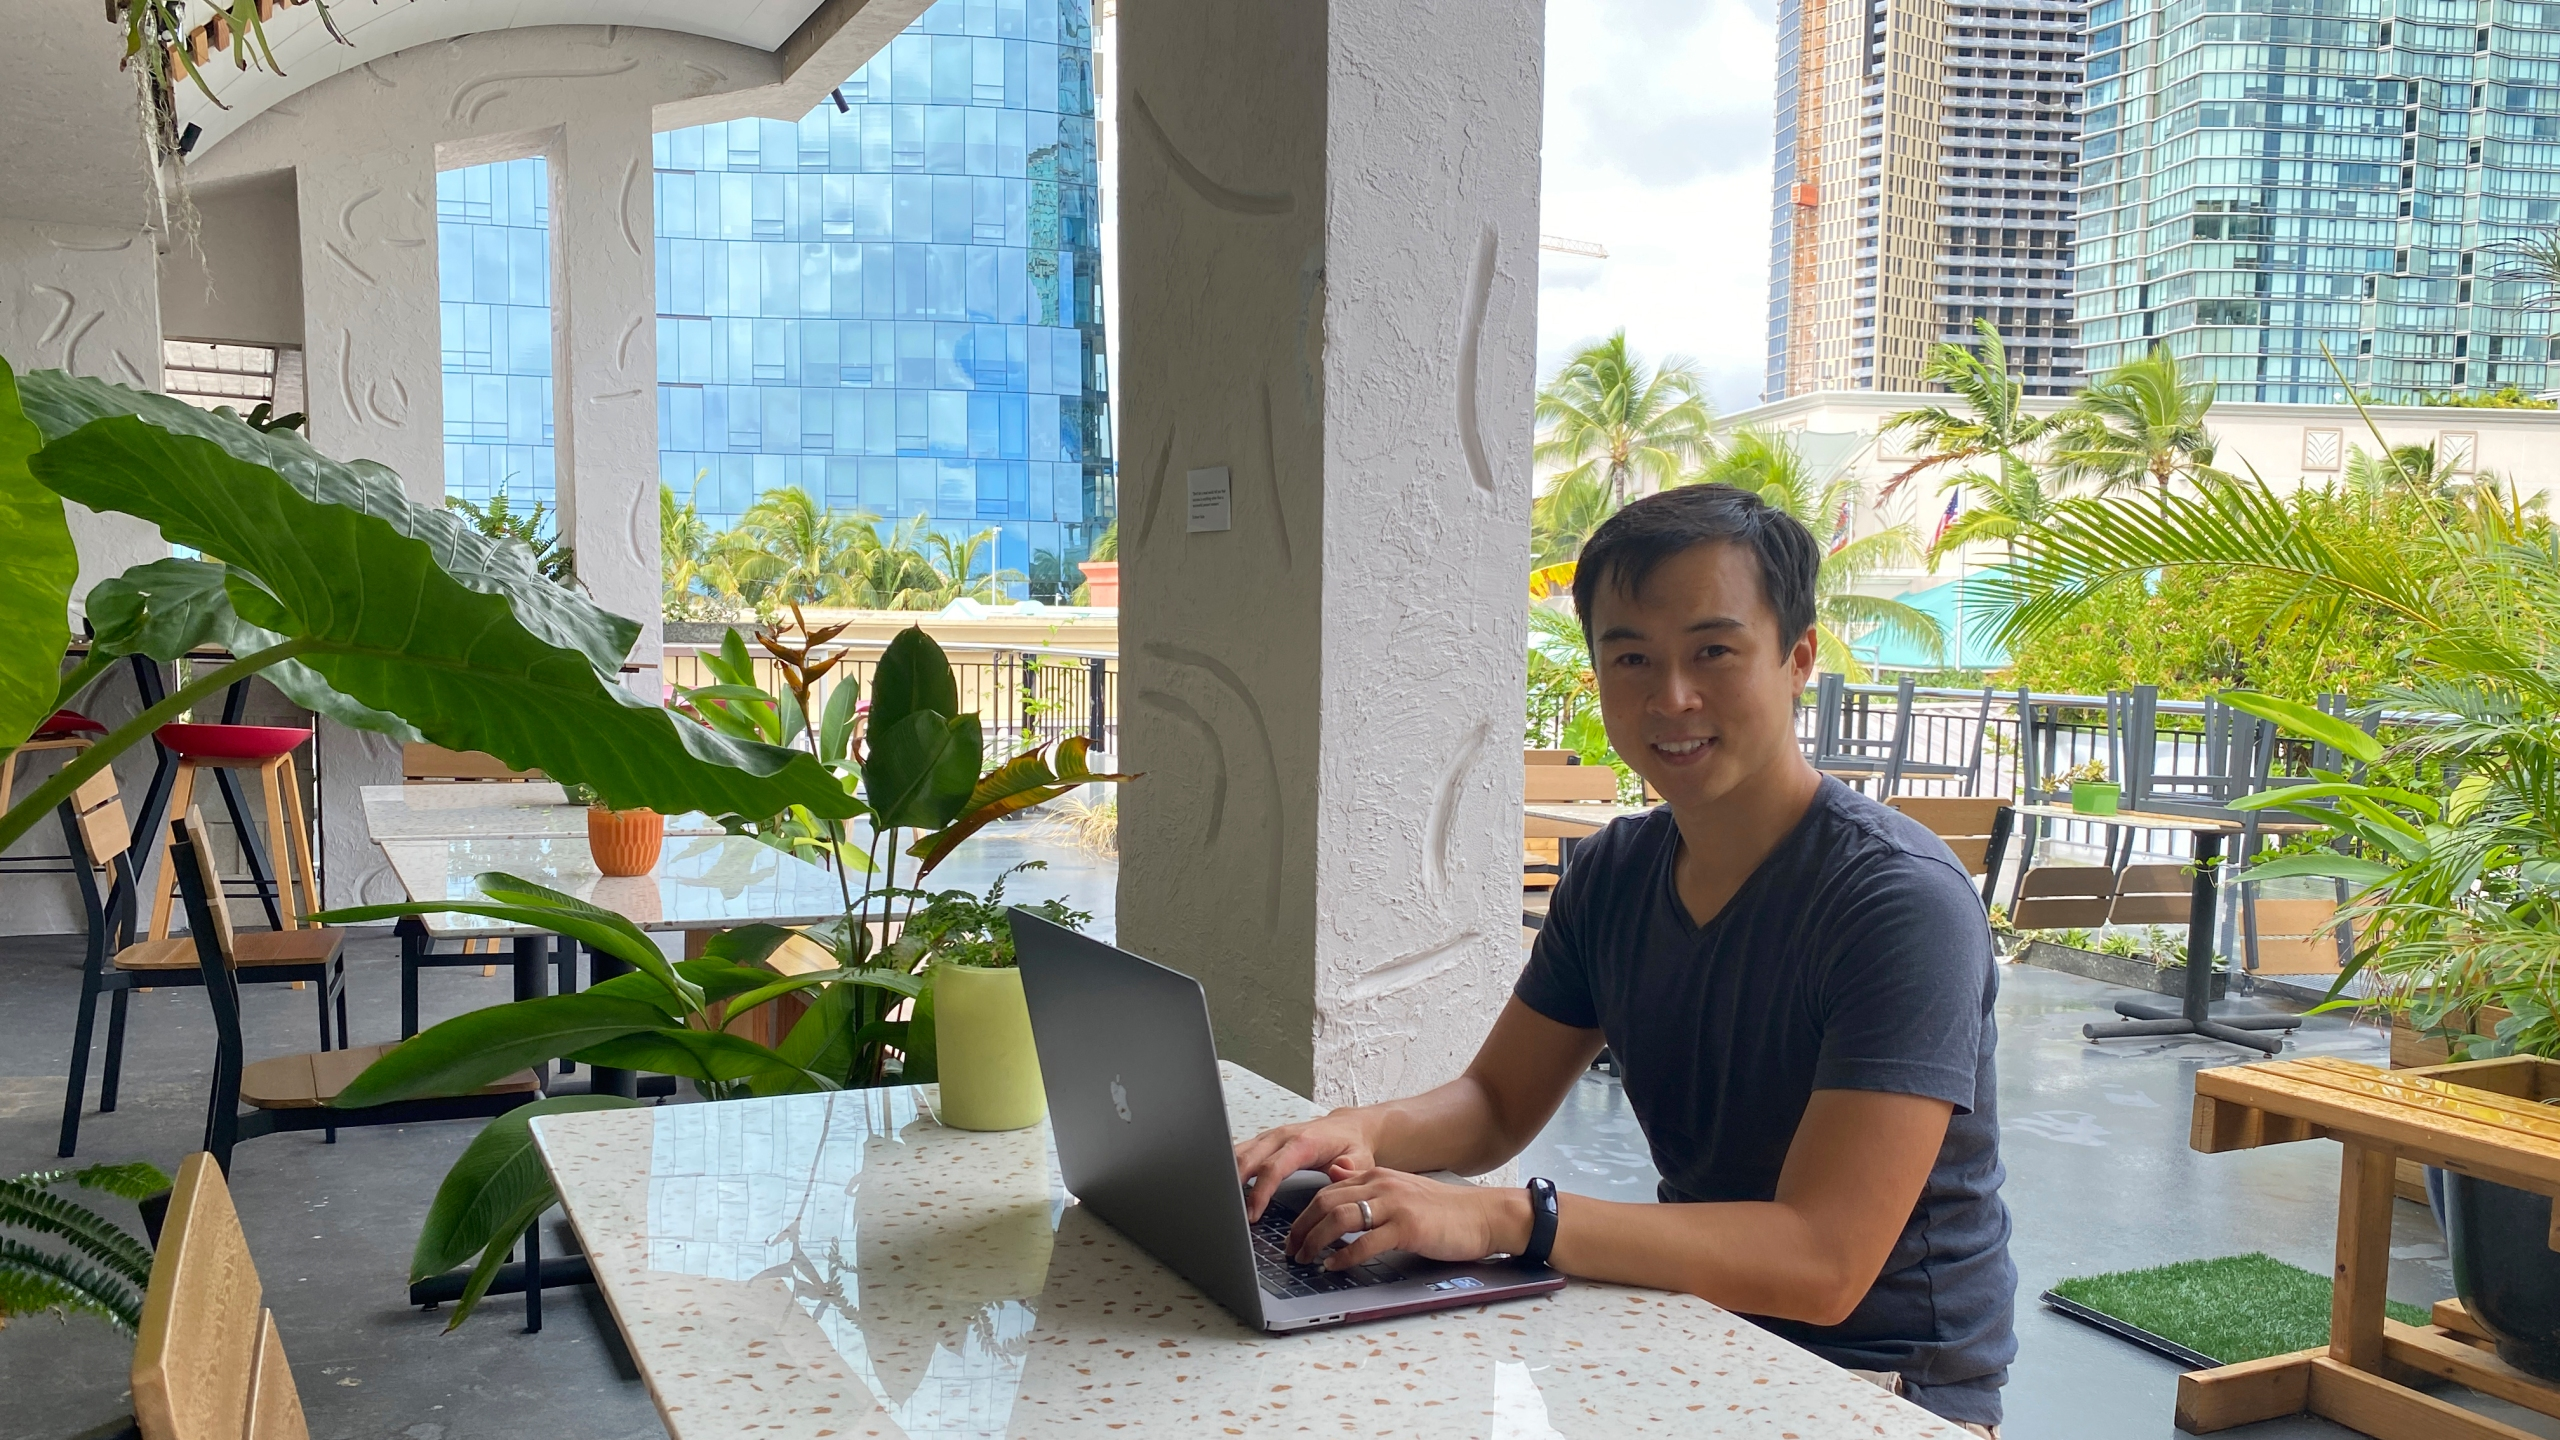 In this photo provided by Ashley McCue, Richard Matsui works from a coworking space on Nov. 18, 2020, in Honolulu. (Ashley McCue via AP)